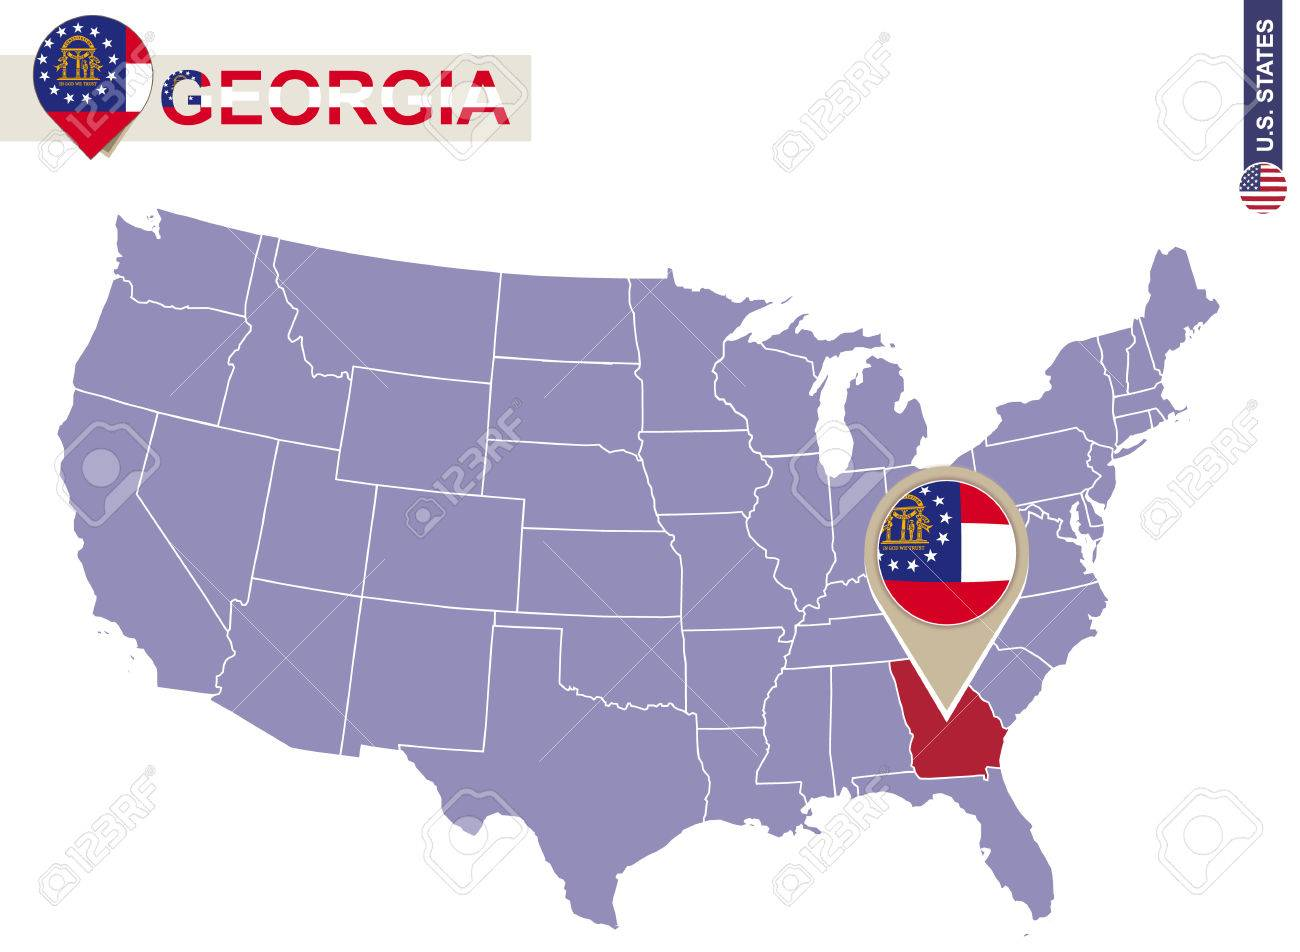 Map Of Usa Georgia.Georgia State On Usa Map Georgia Flag And Map Us States